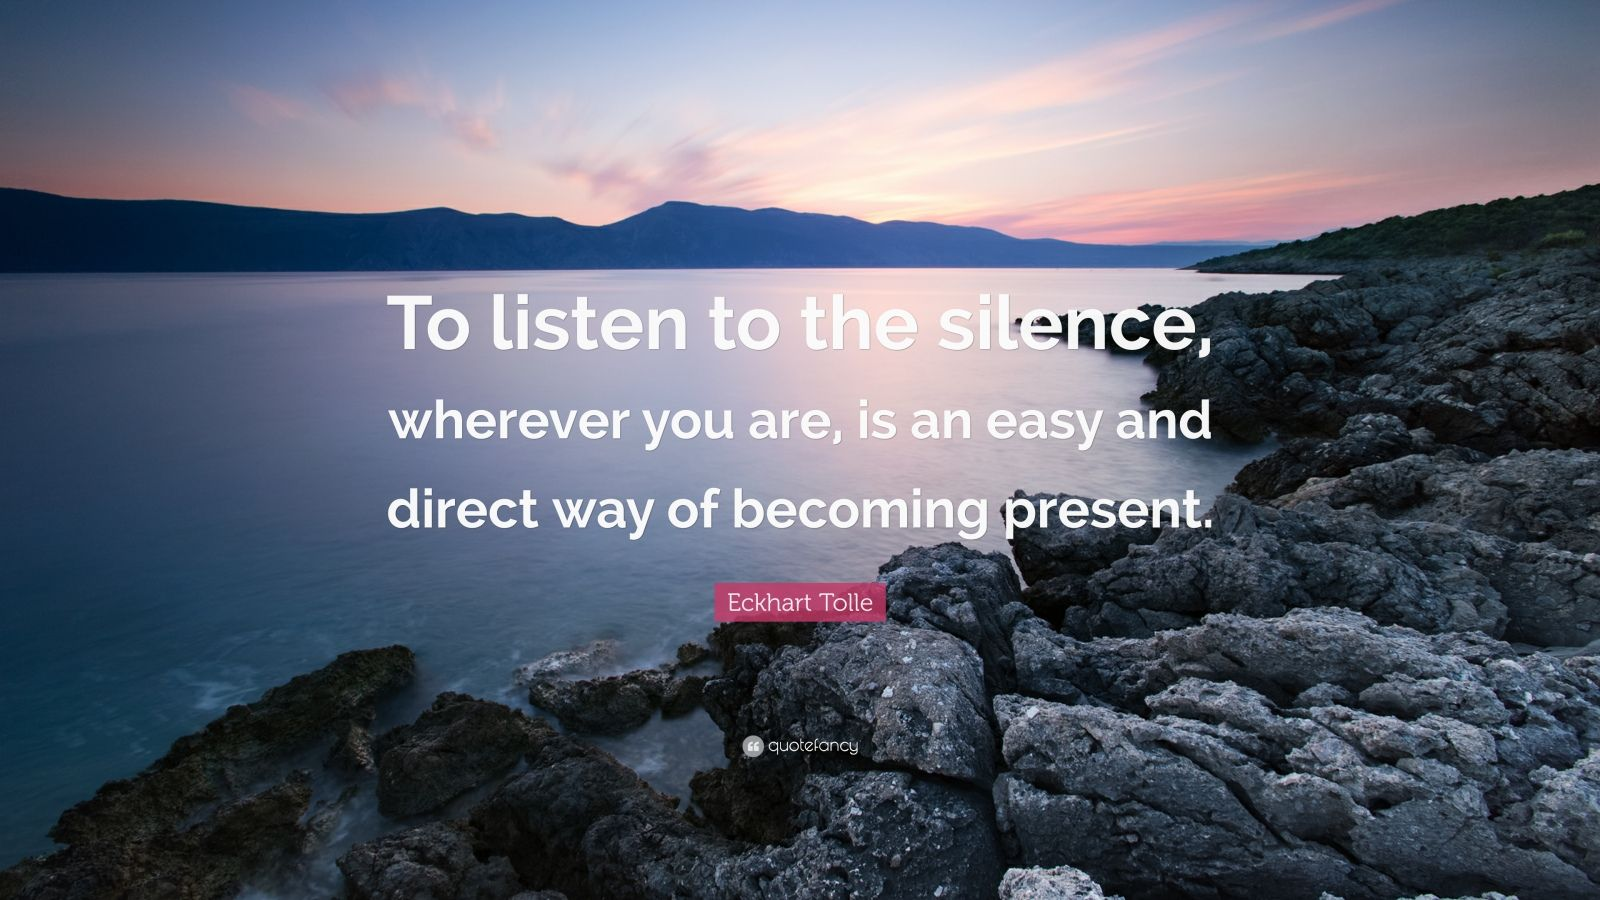 """Eckhart Tolle Quote: """"To listen to the silence, wherever you are, is an easy and direct way of becoming present."""""""